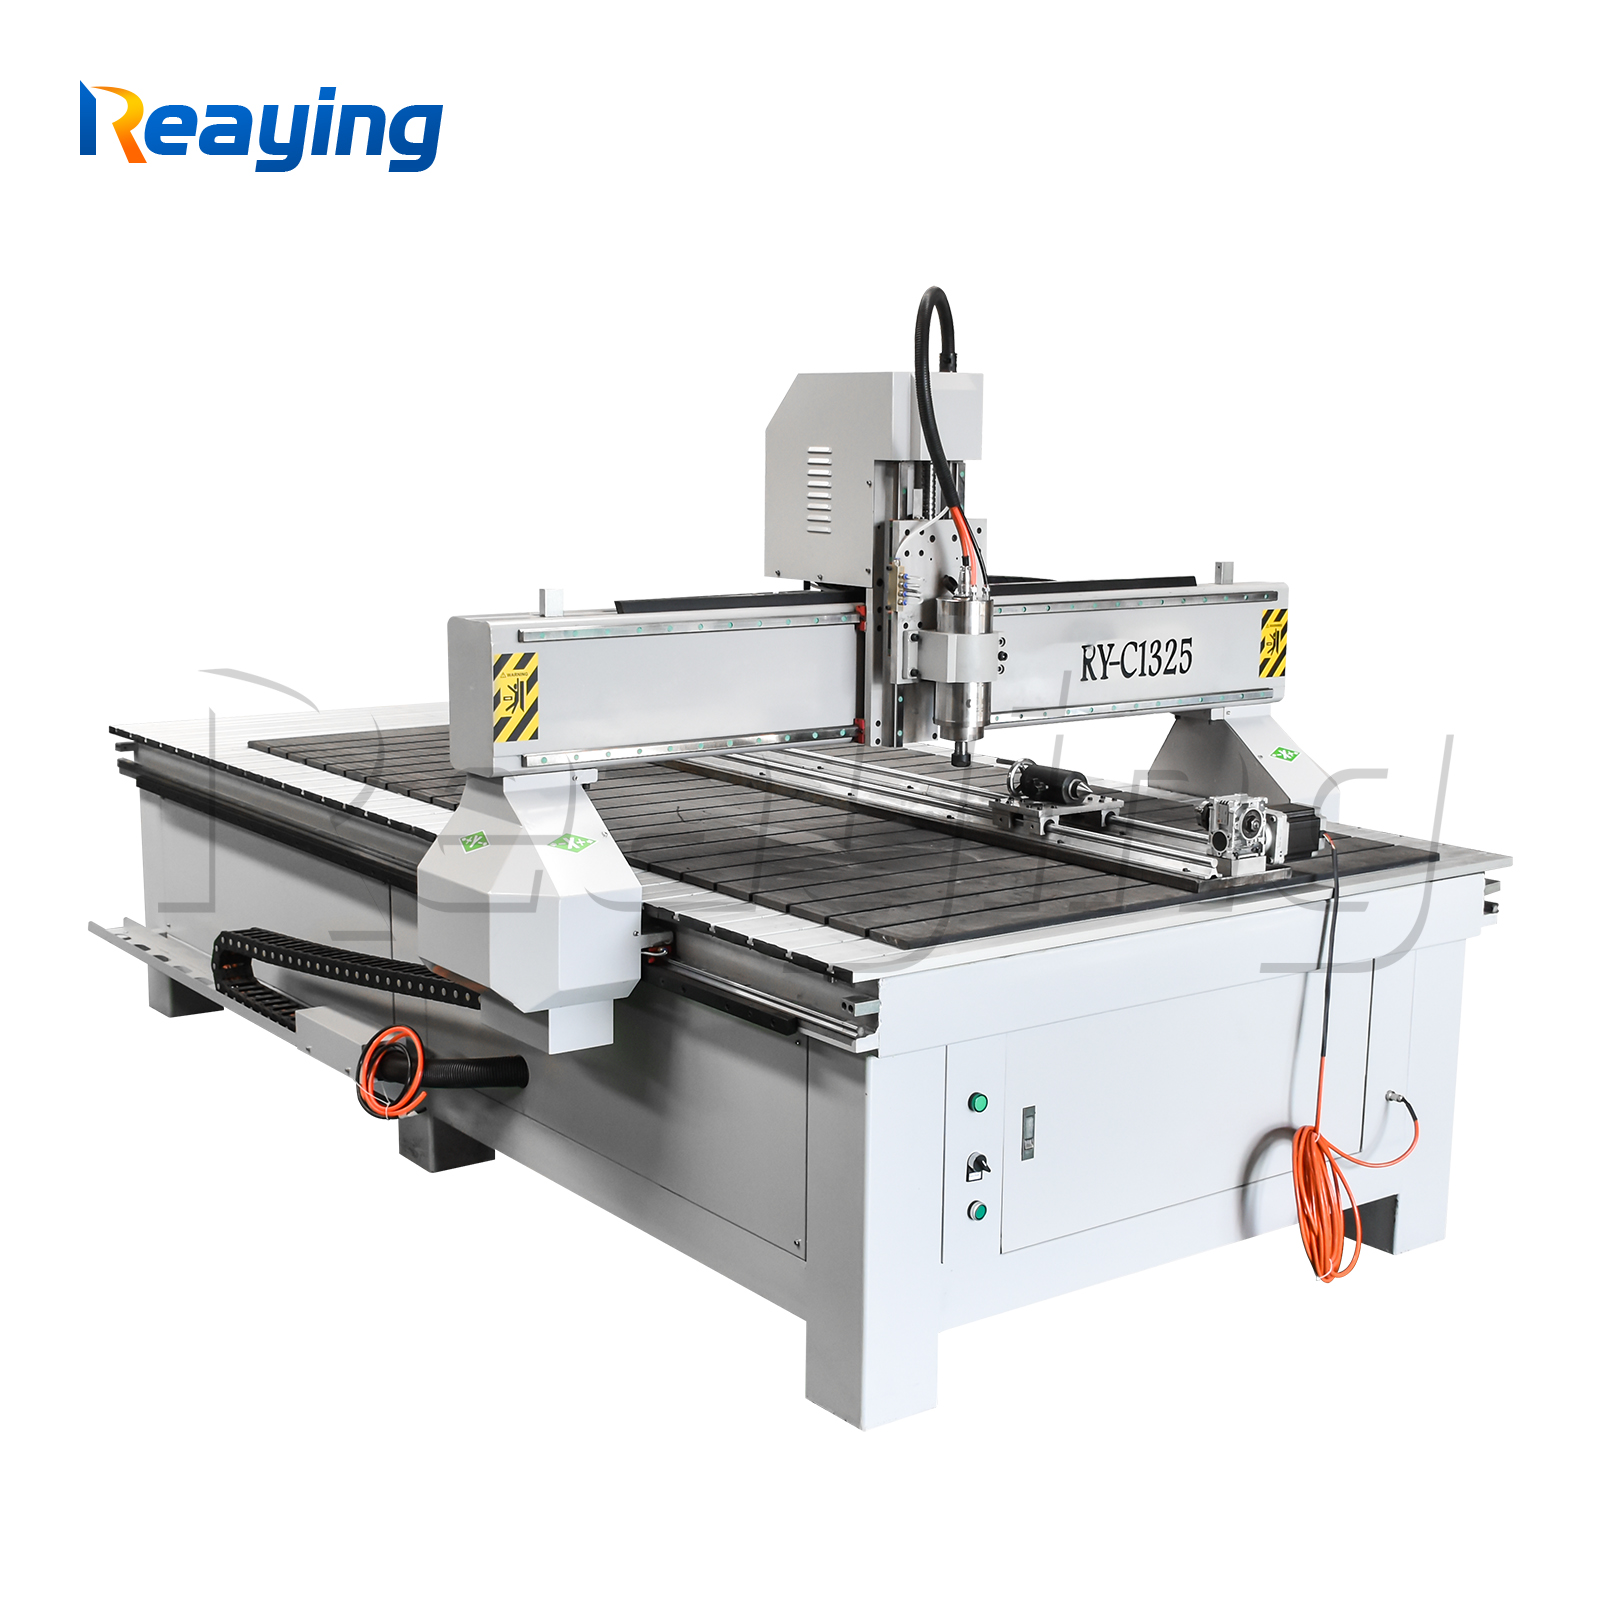 Us 899 1 10 Off 1325 Axis Nc Studio Controller Cnc Wood Router 3 Axis Cnc Milling Machine In Wood Routers From Tools On Aliexpress 11 11 Double